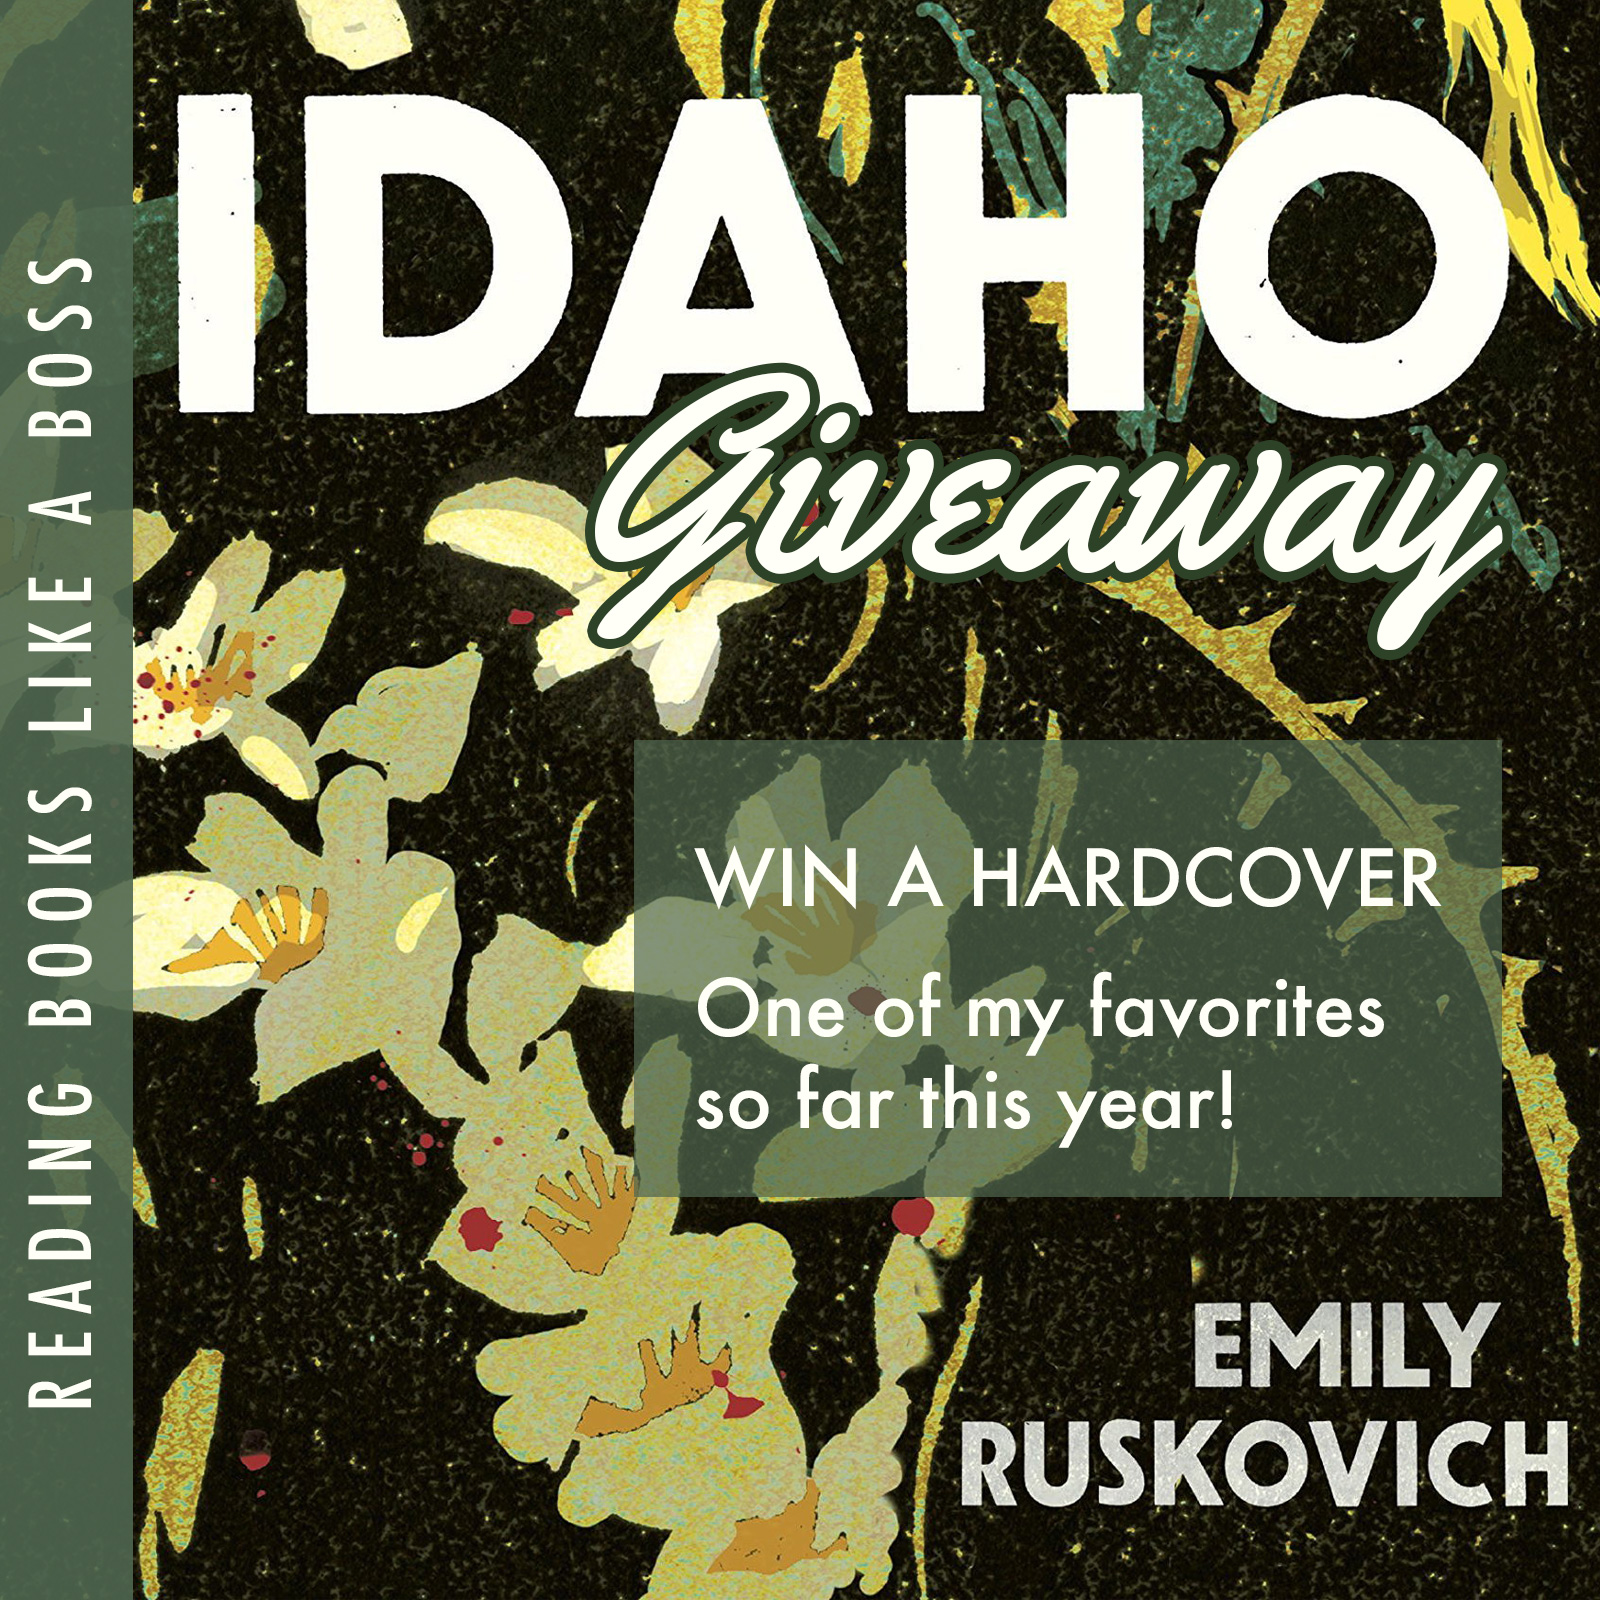 Hardcover Giveaway - Idaho by Emily Ruskovich